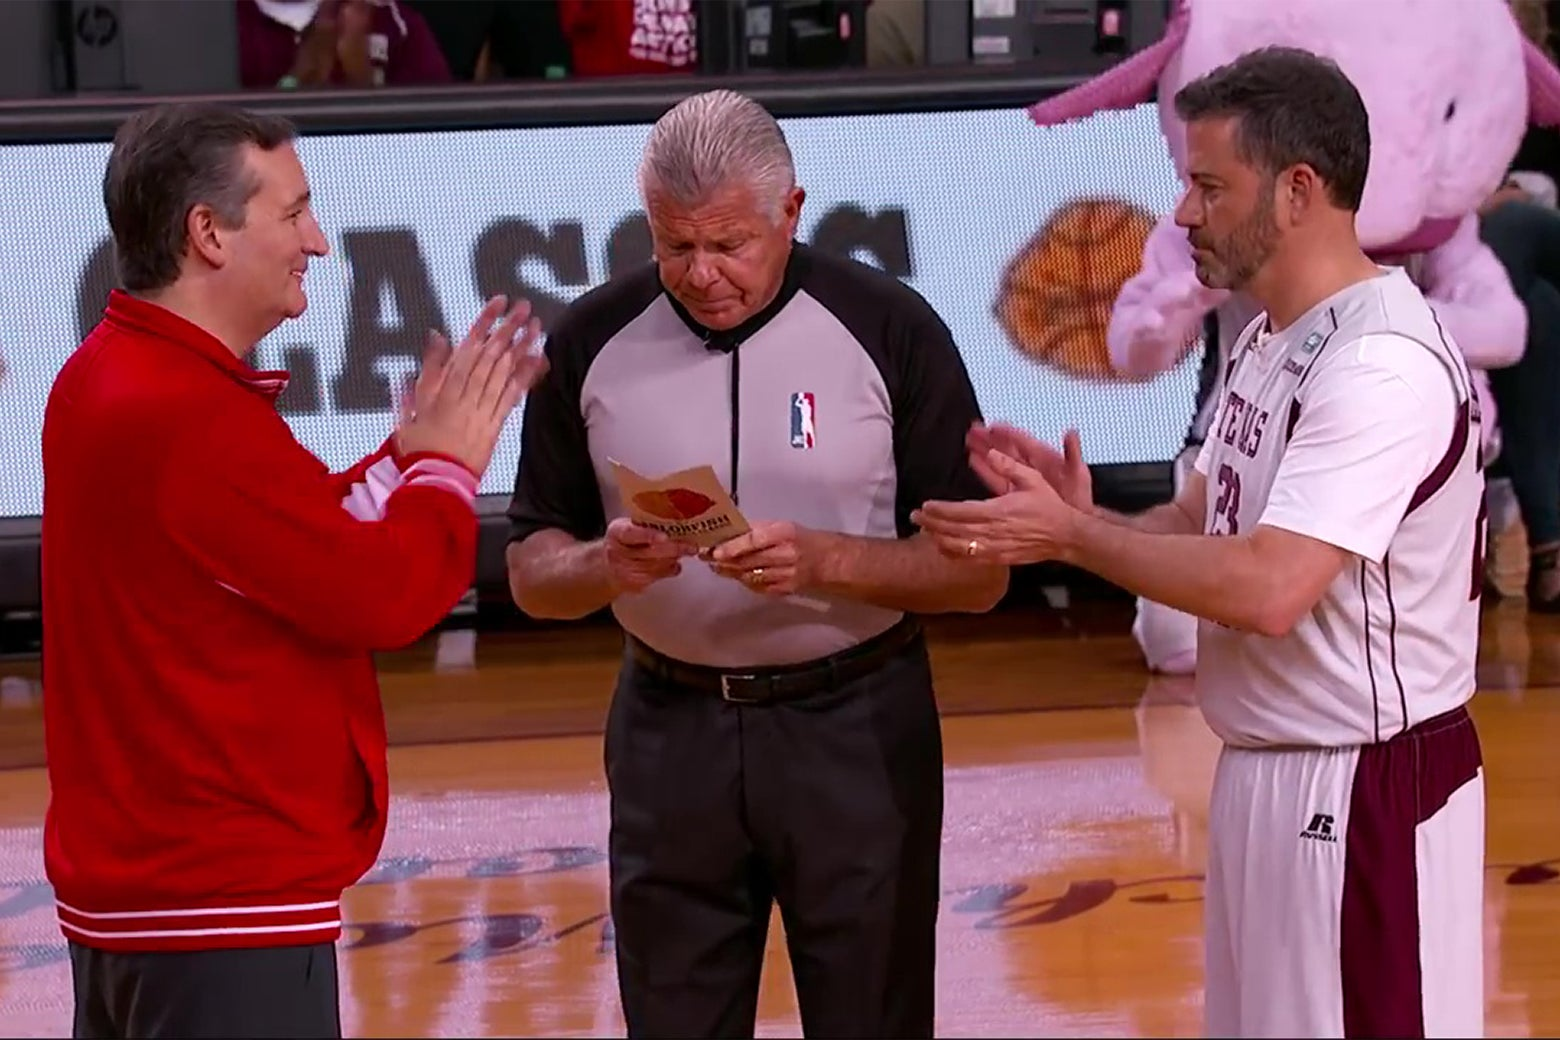 Want to Spend 16 Minutes and 37 Seconds of Your Precious Life Watching Jimmy Kimmel and Ted Cruz Play Basketball?